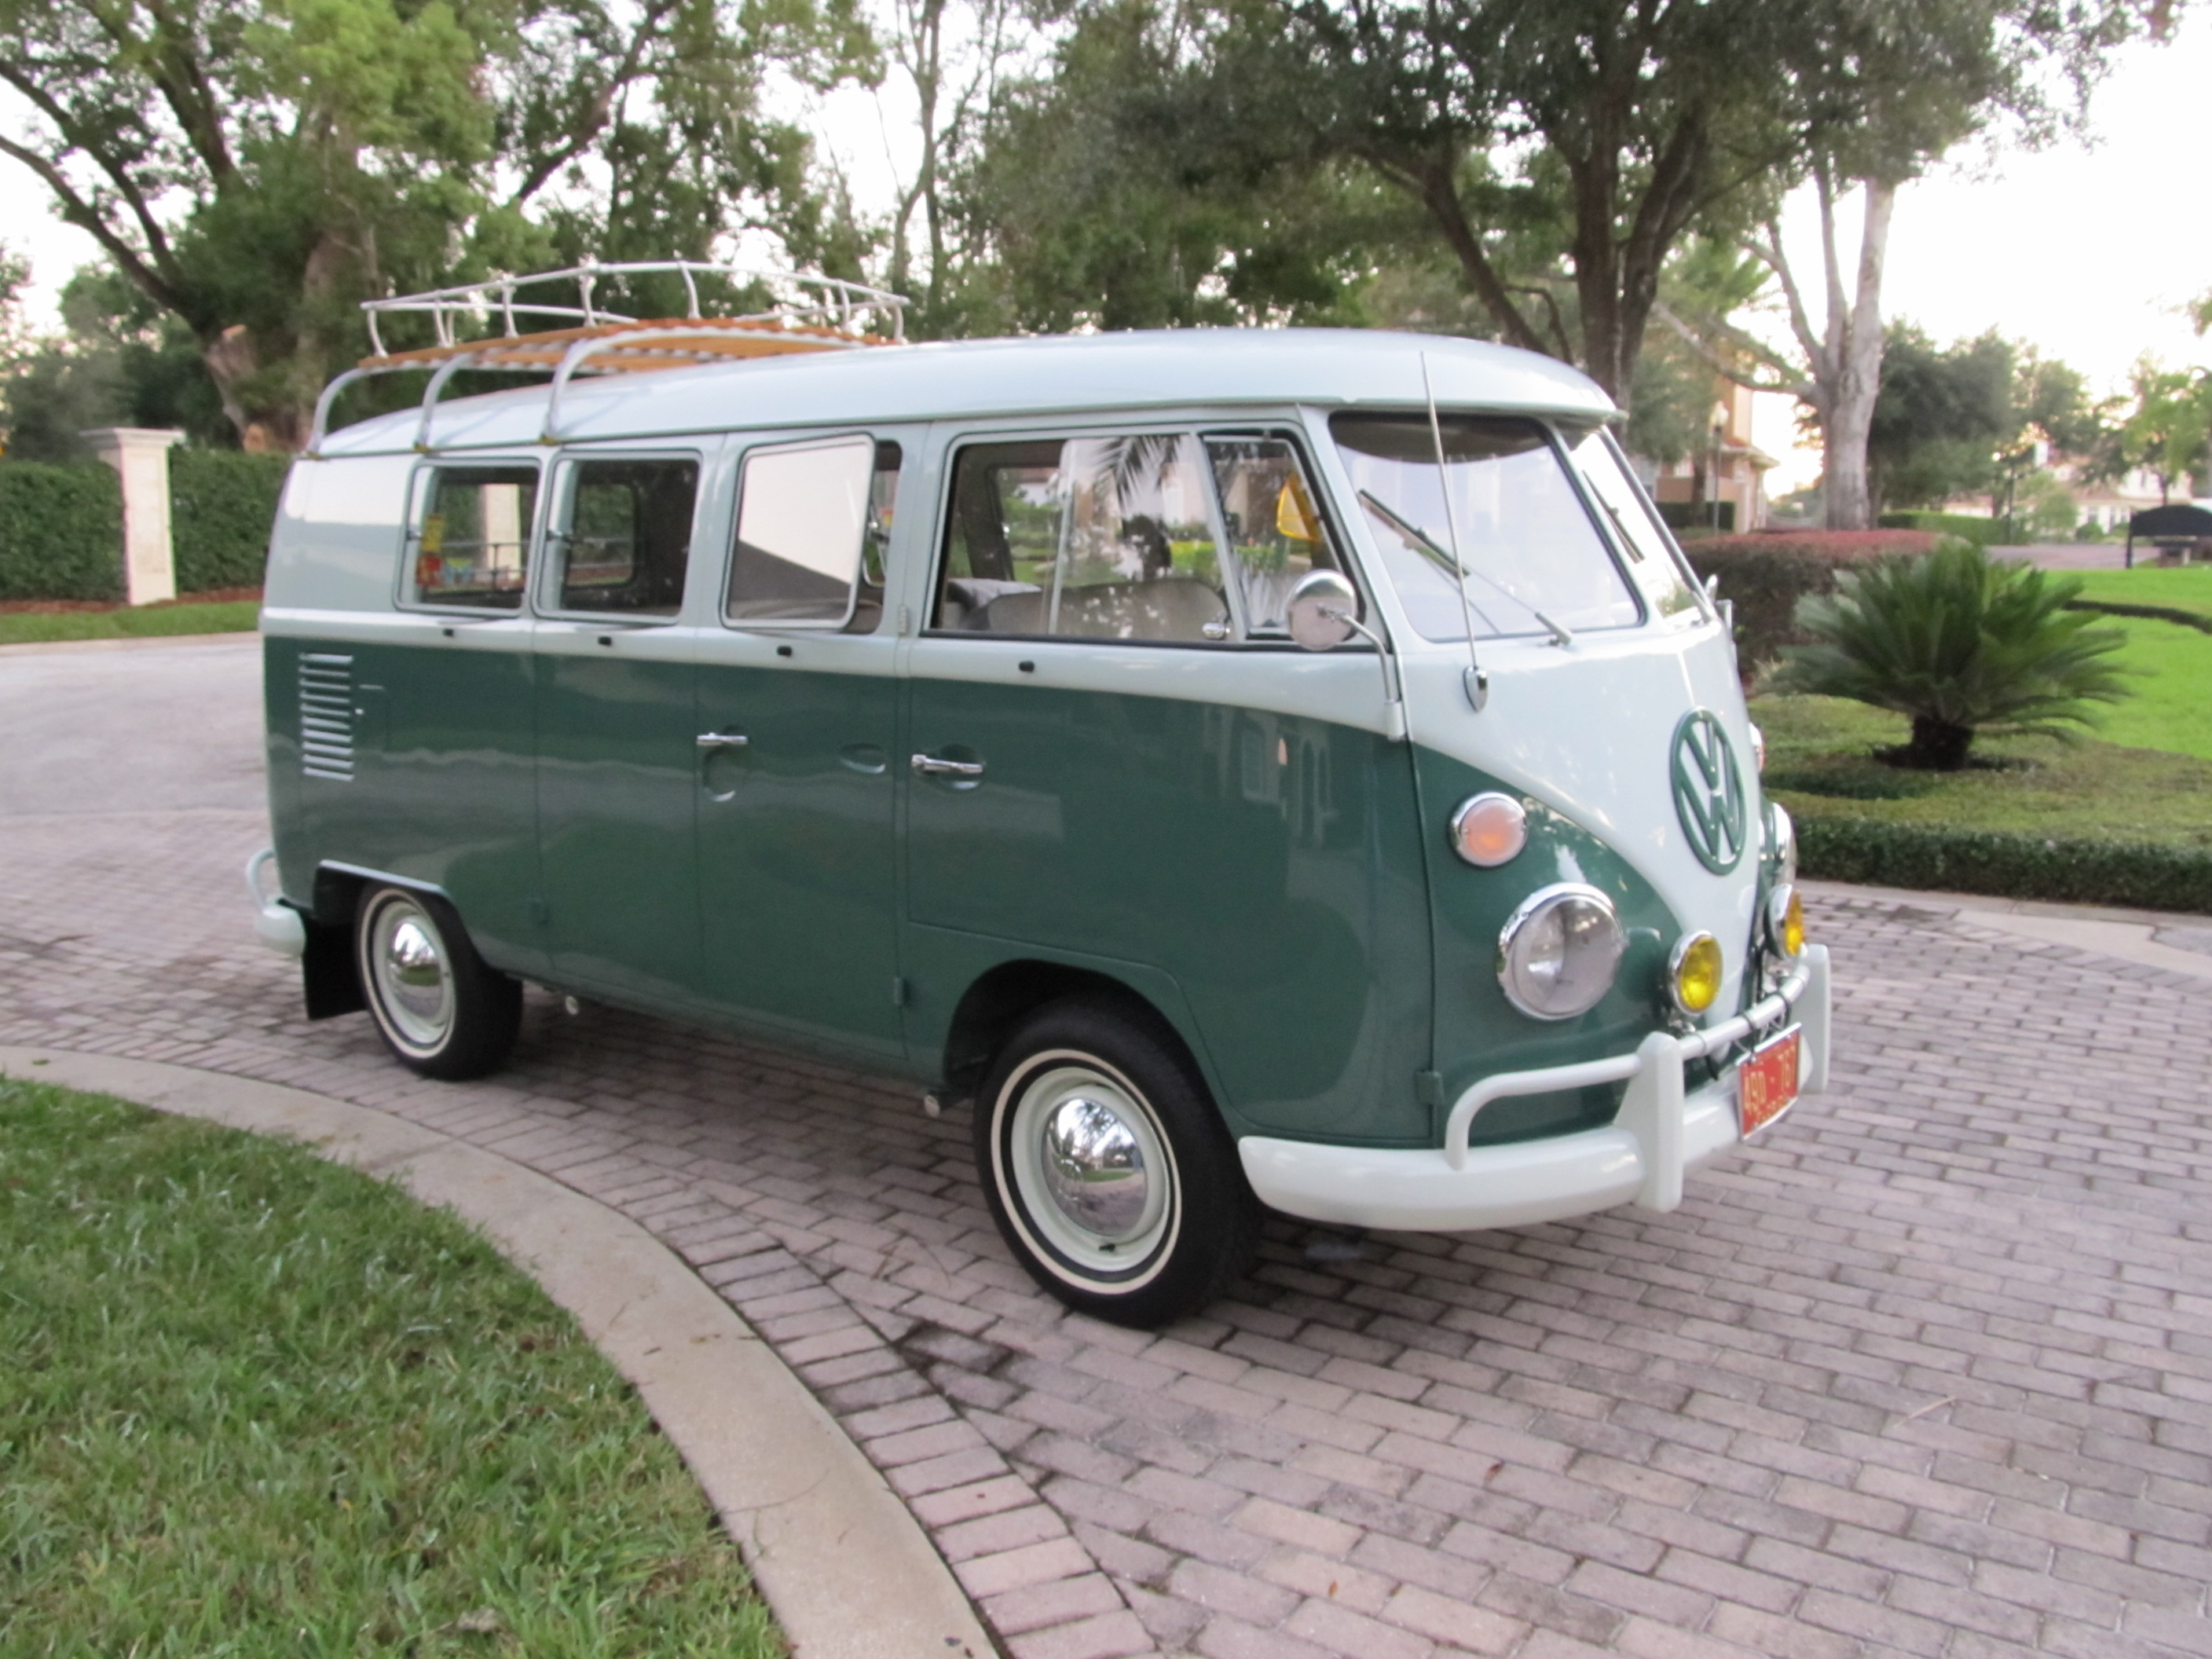 1965 Volkswagen Bus - Sold! - Vantage Sports Cars | Vantage Sports